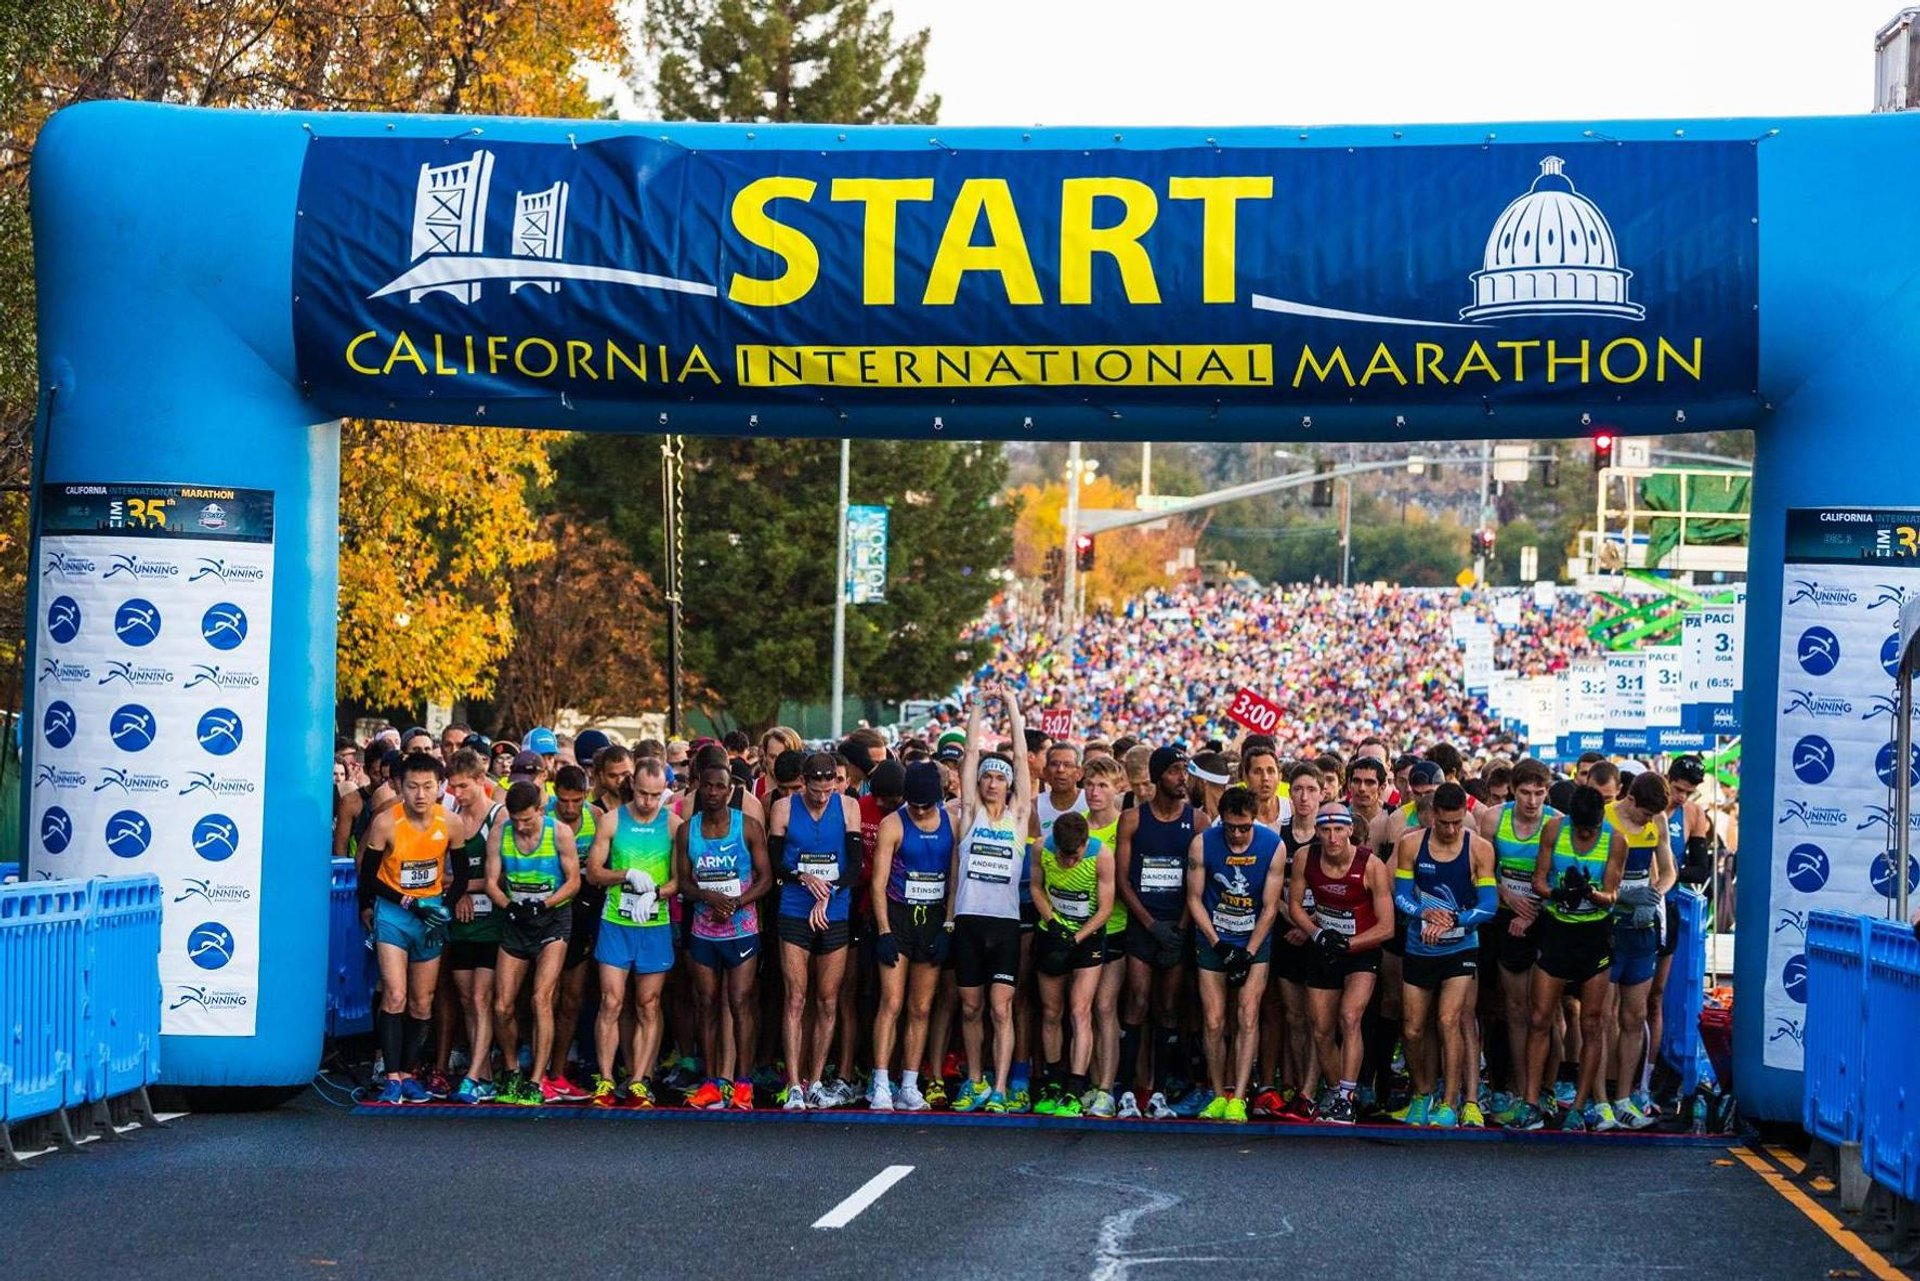 California International Marathon in California - Best Season